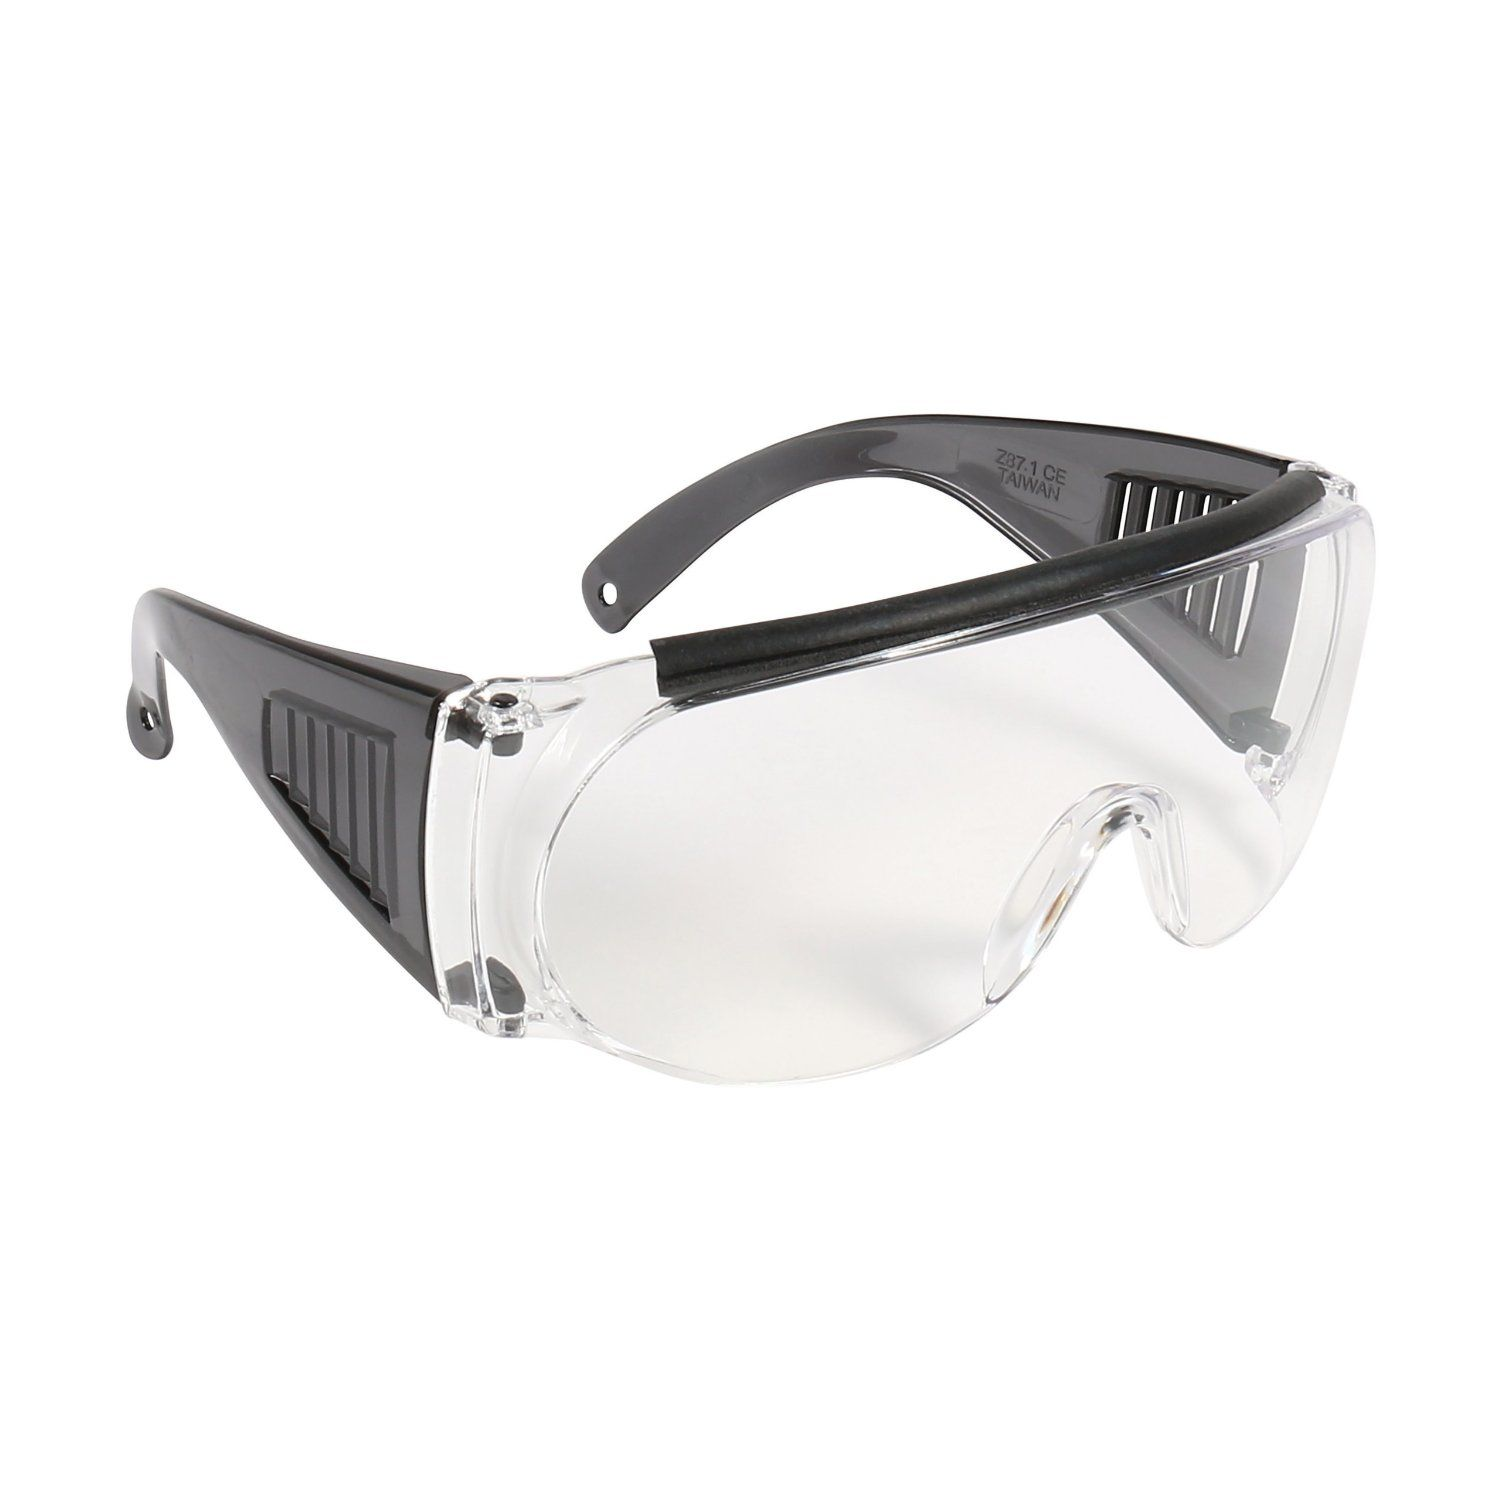 Allen over shooting safety glasses for use